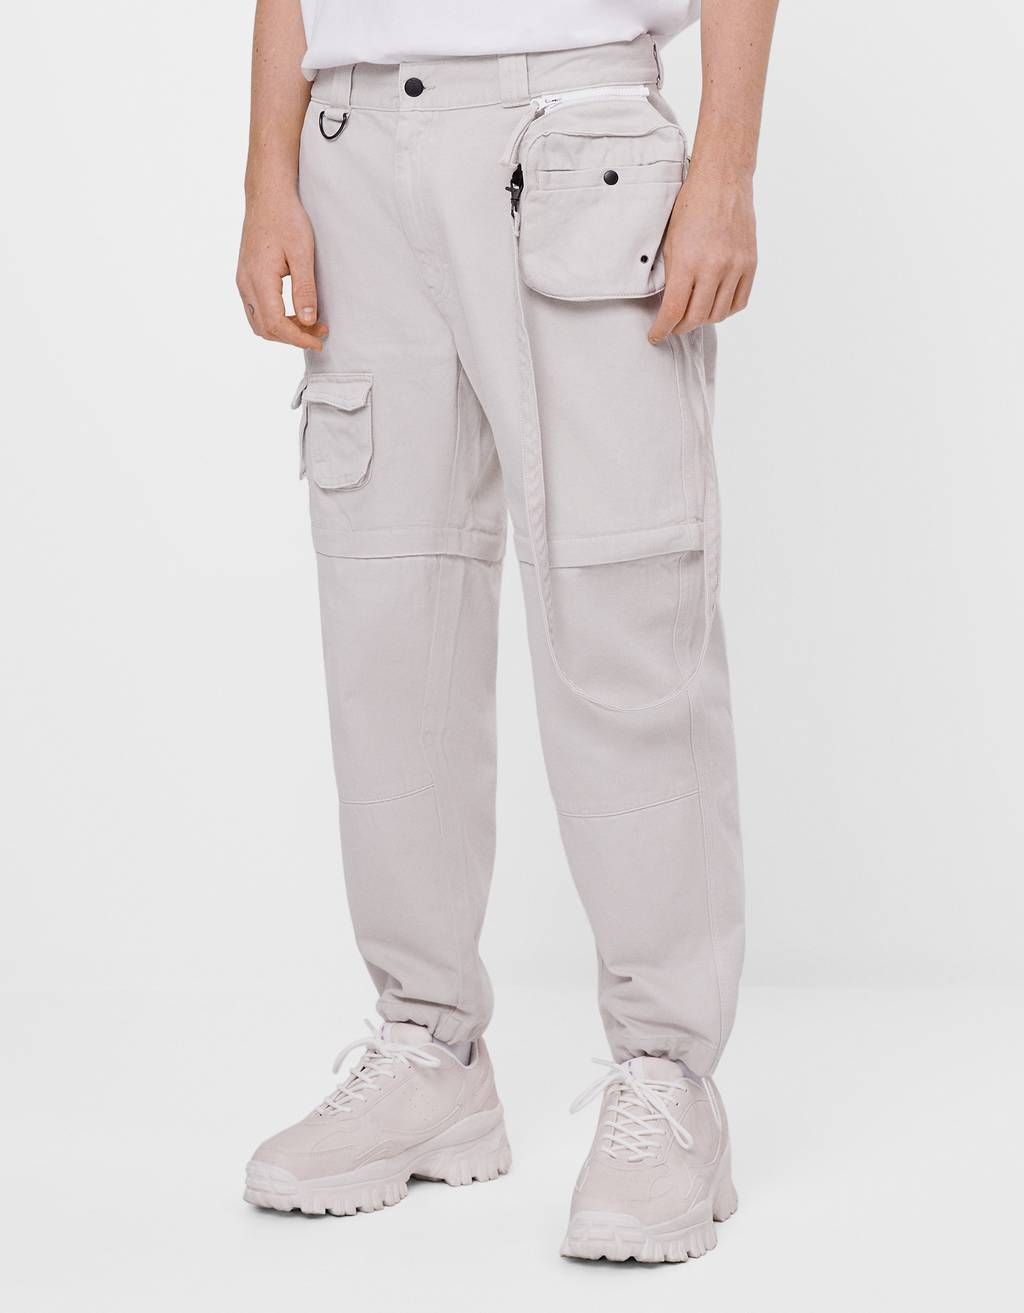 Auseinandernehmbare Jeans